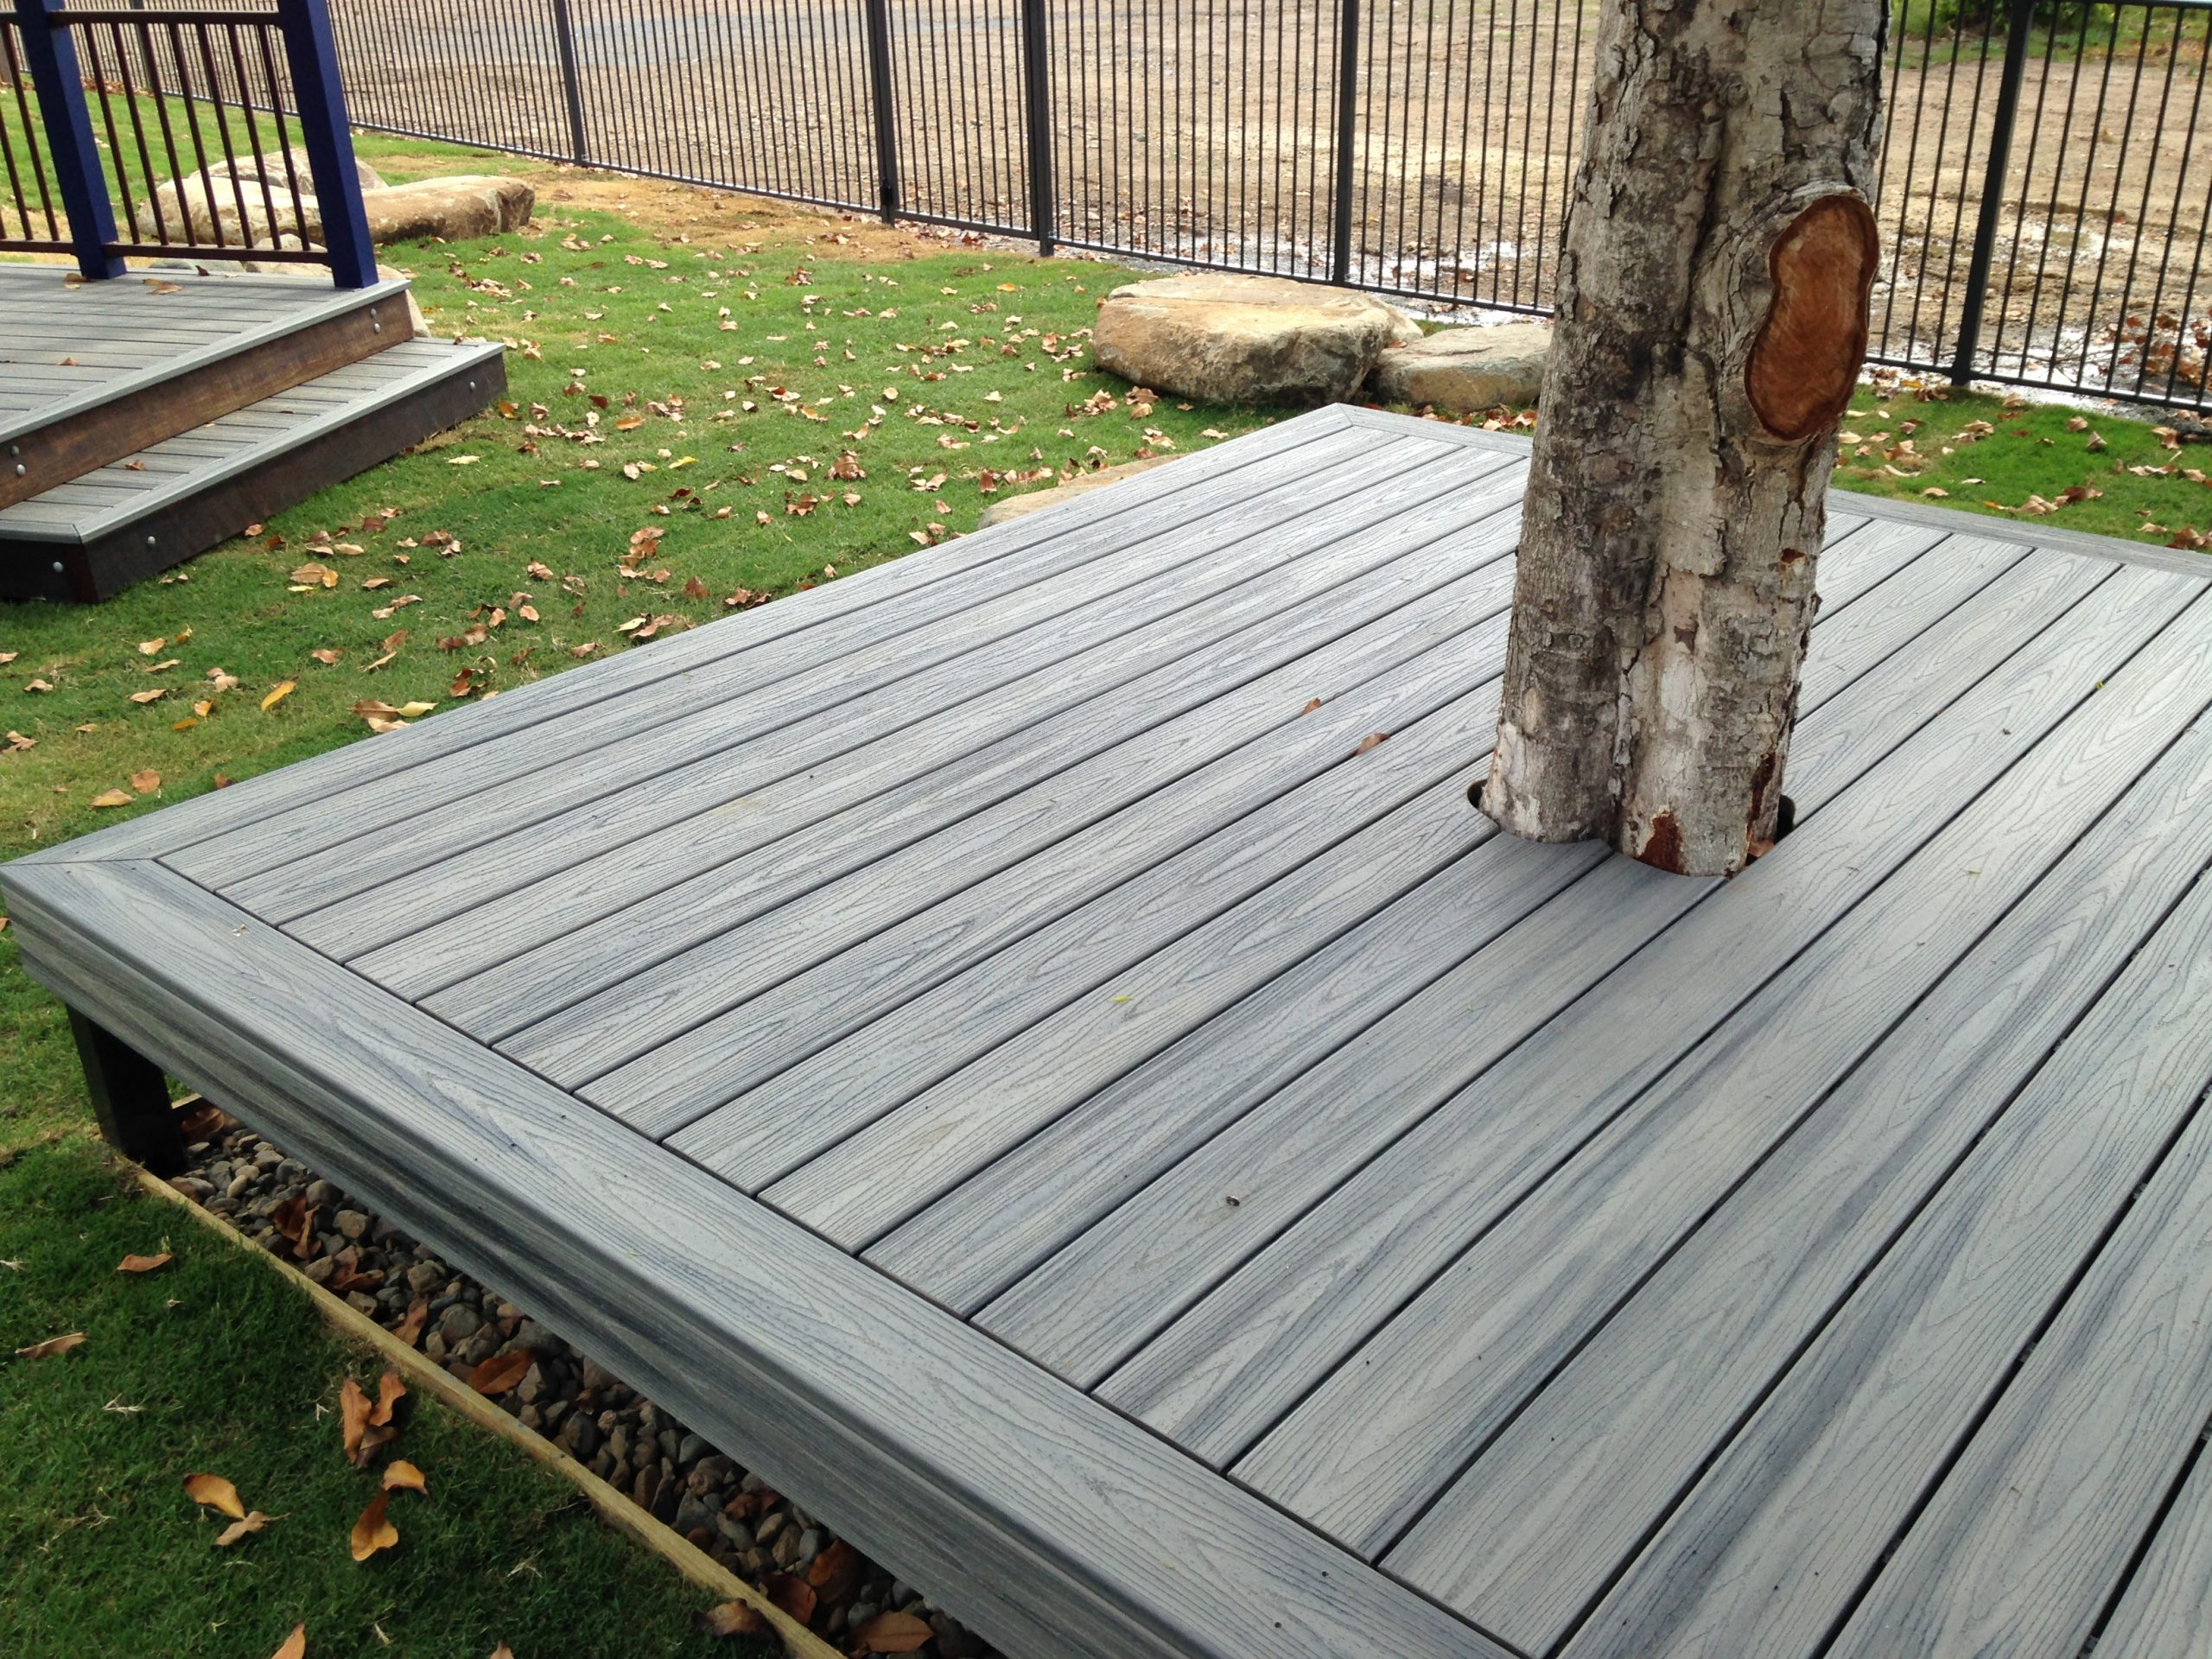 Example of decks and timber work for Plants Whitsunday Landscaping